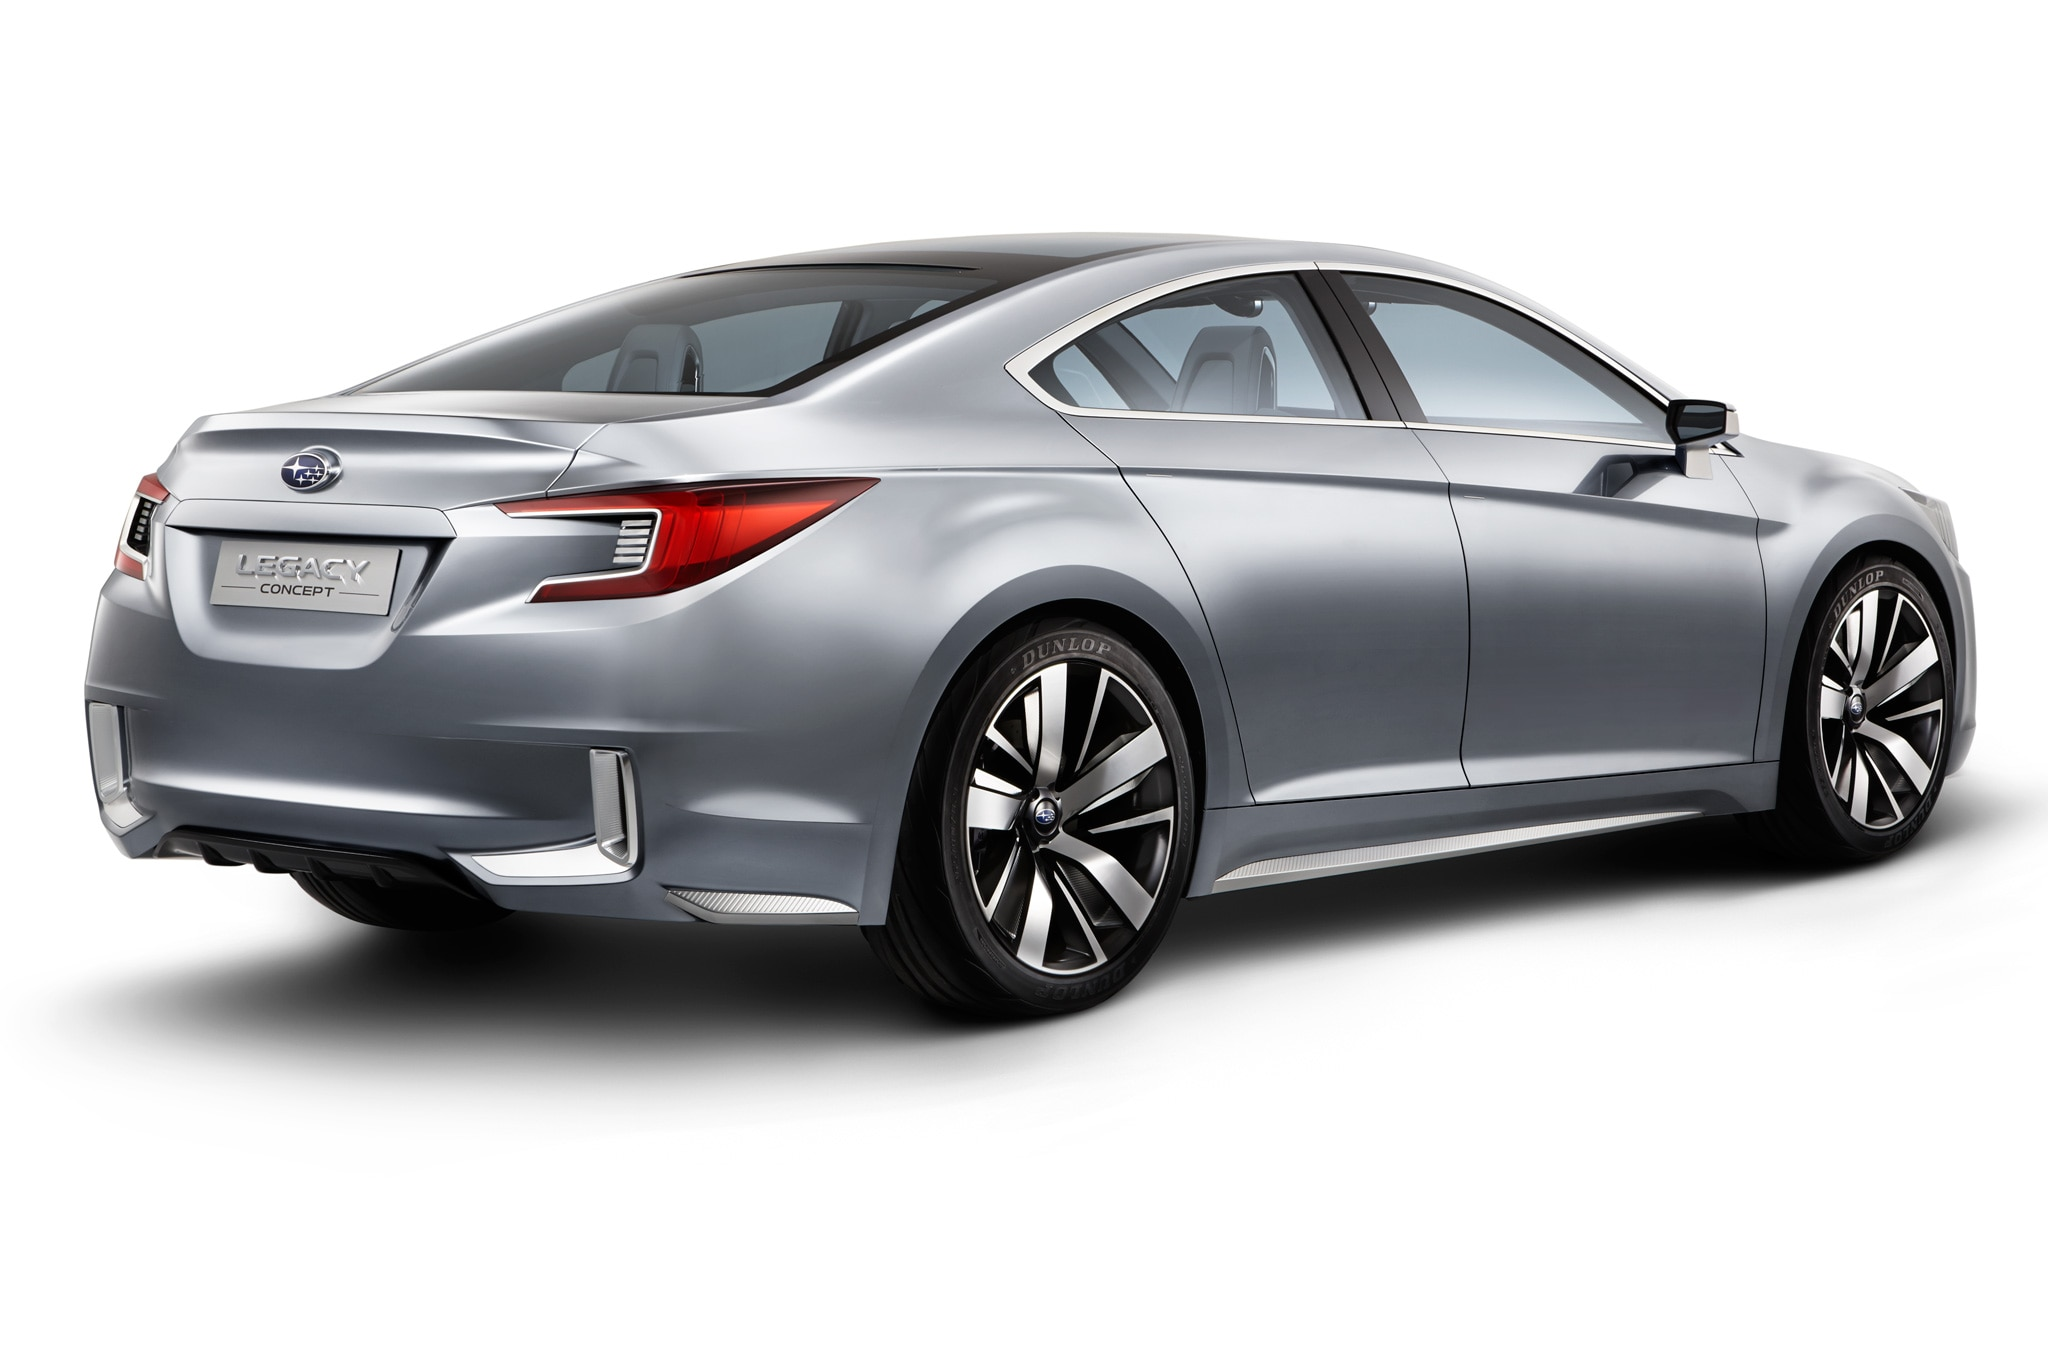 2015 subaru legacy concept debuts at 2013 los angeles auto show although vanachro Image collections